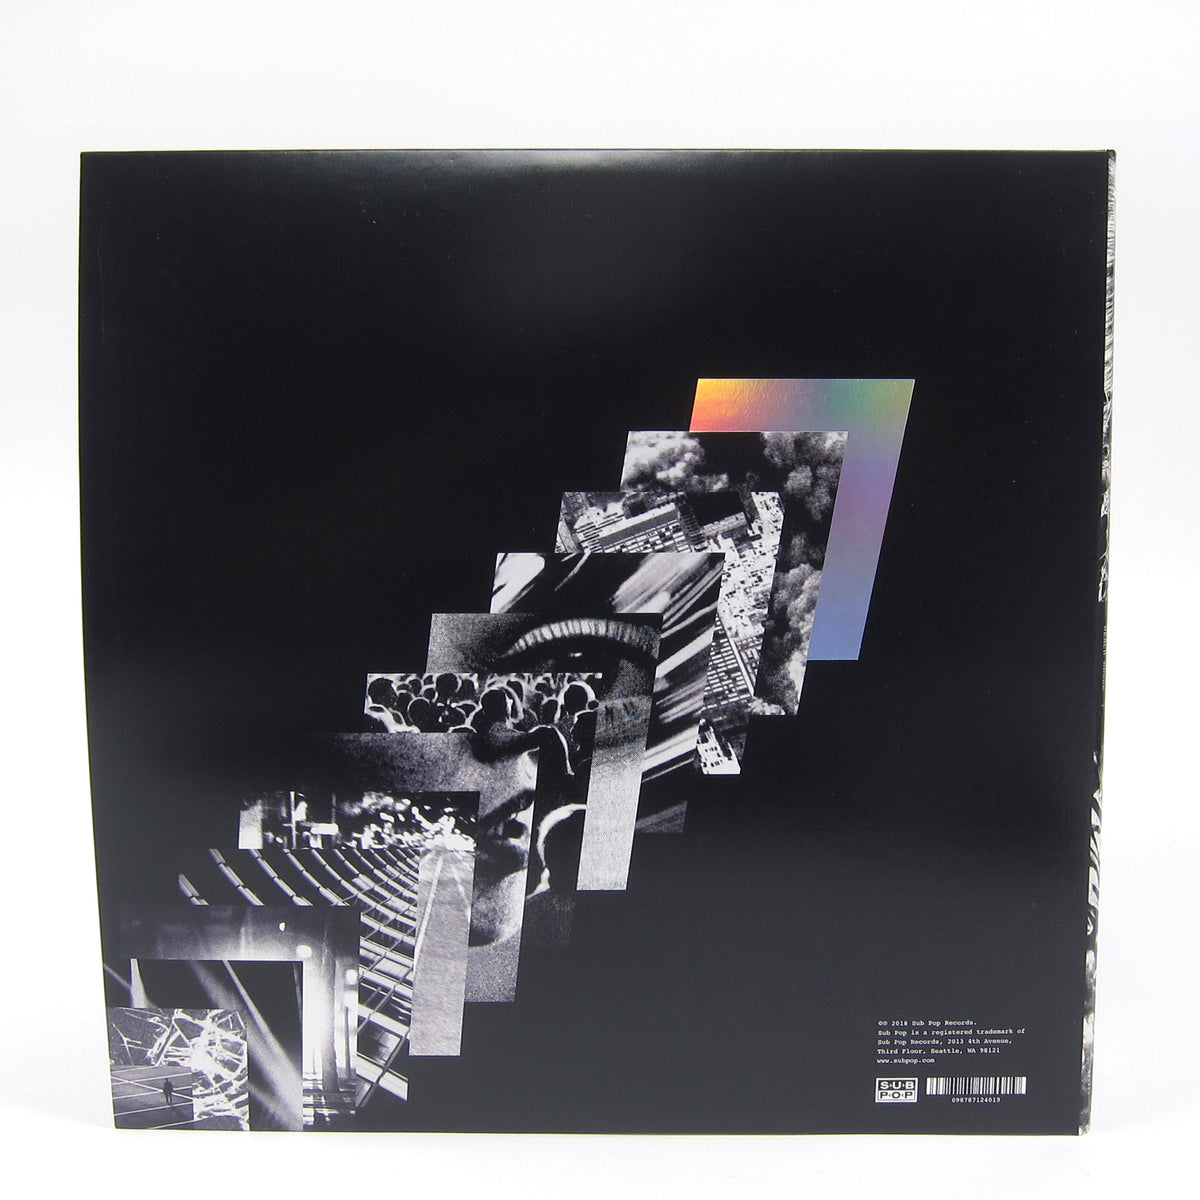 Beach House: 7 (Loser Edition Colored Vinyl) Vinyl LP